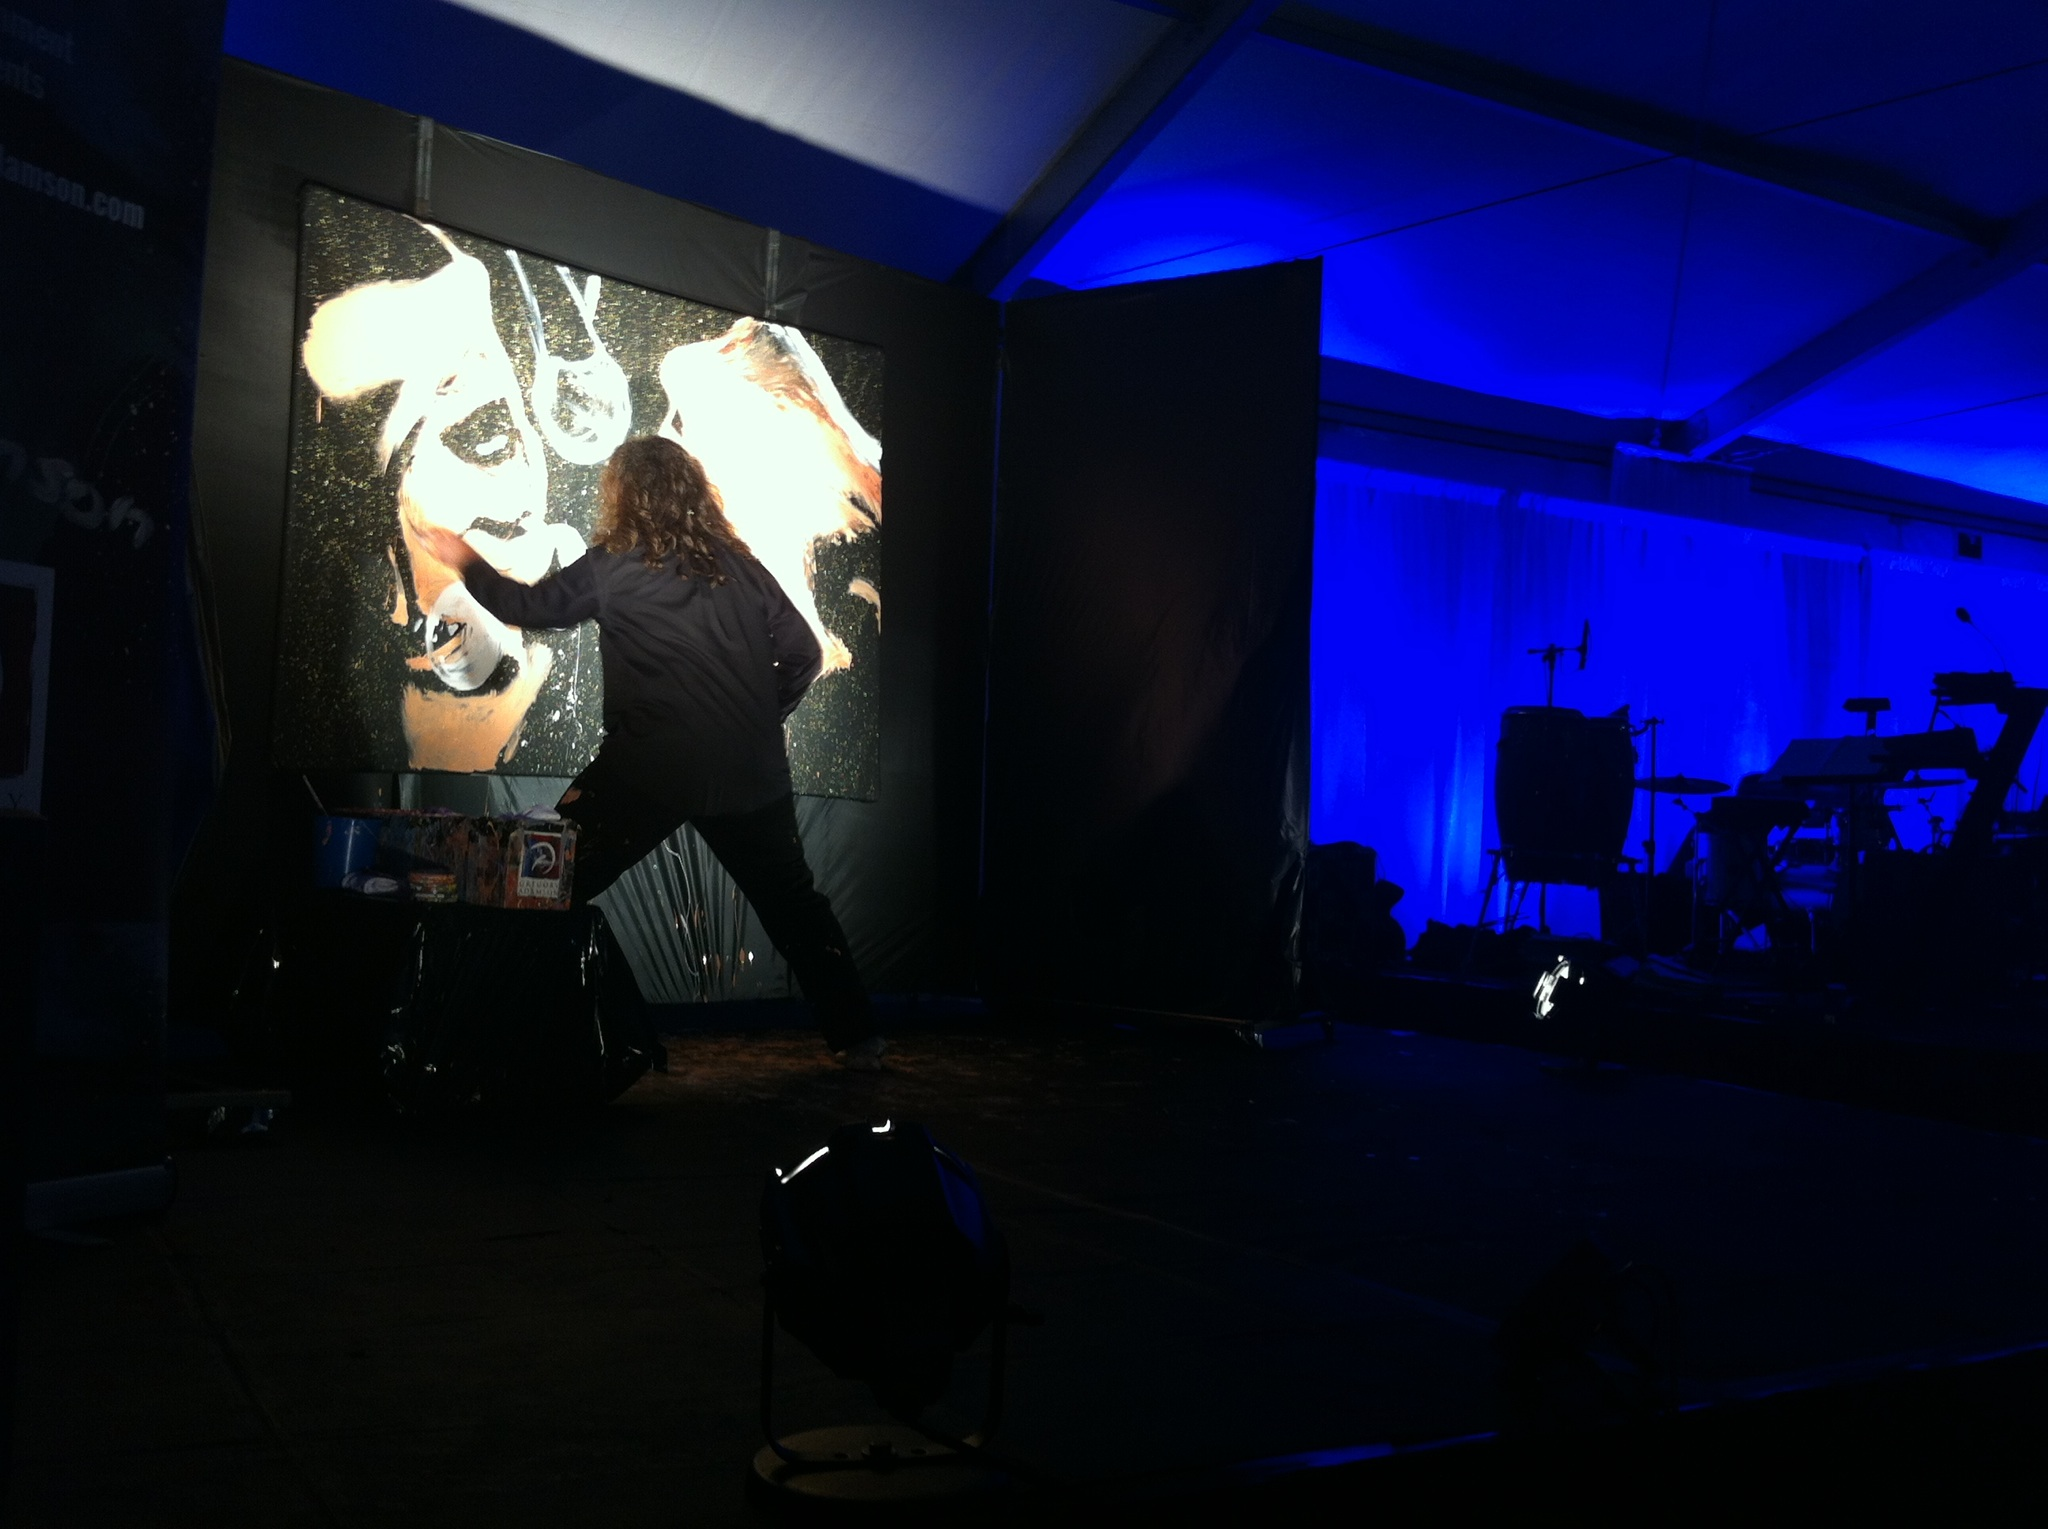 Gregory Adamson performance painting at a fundraising event